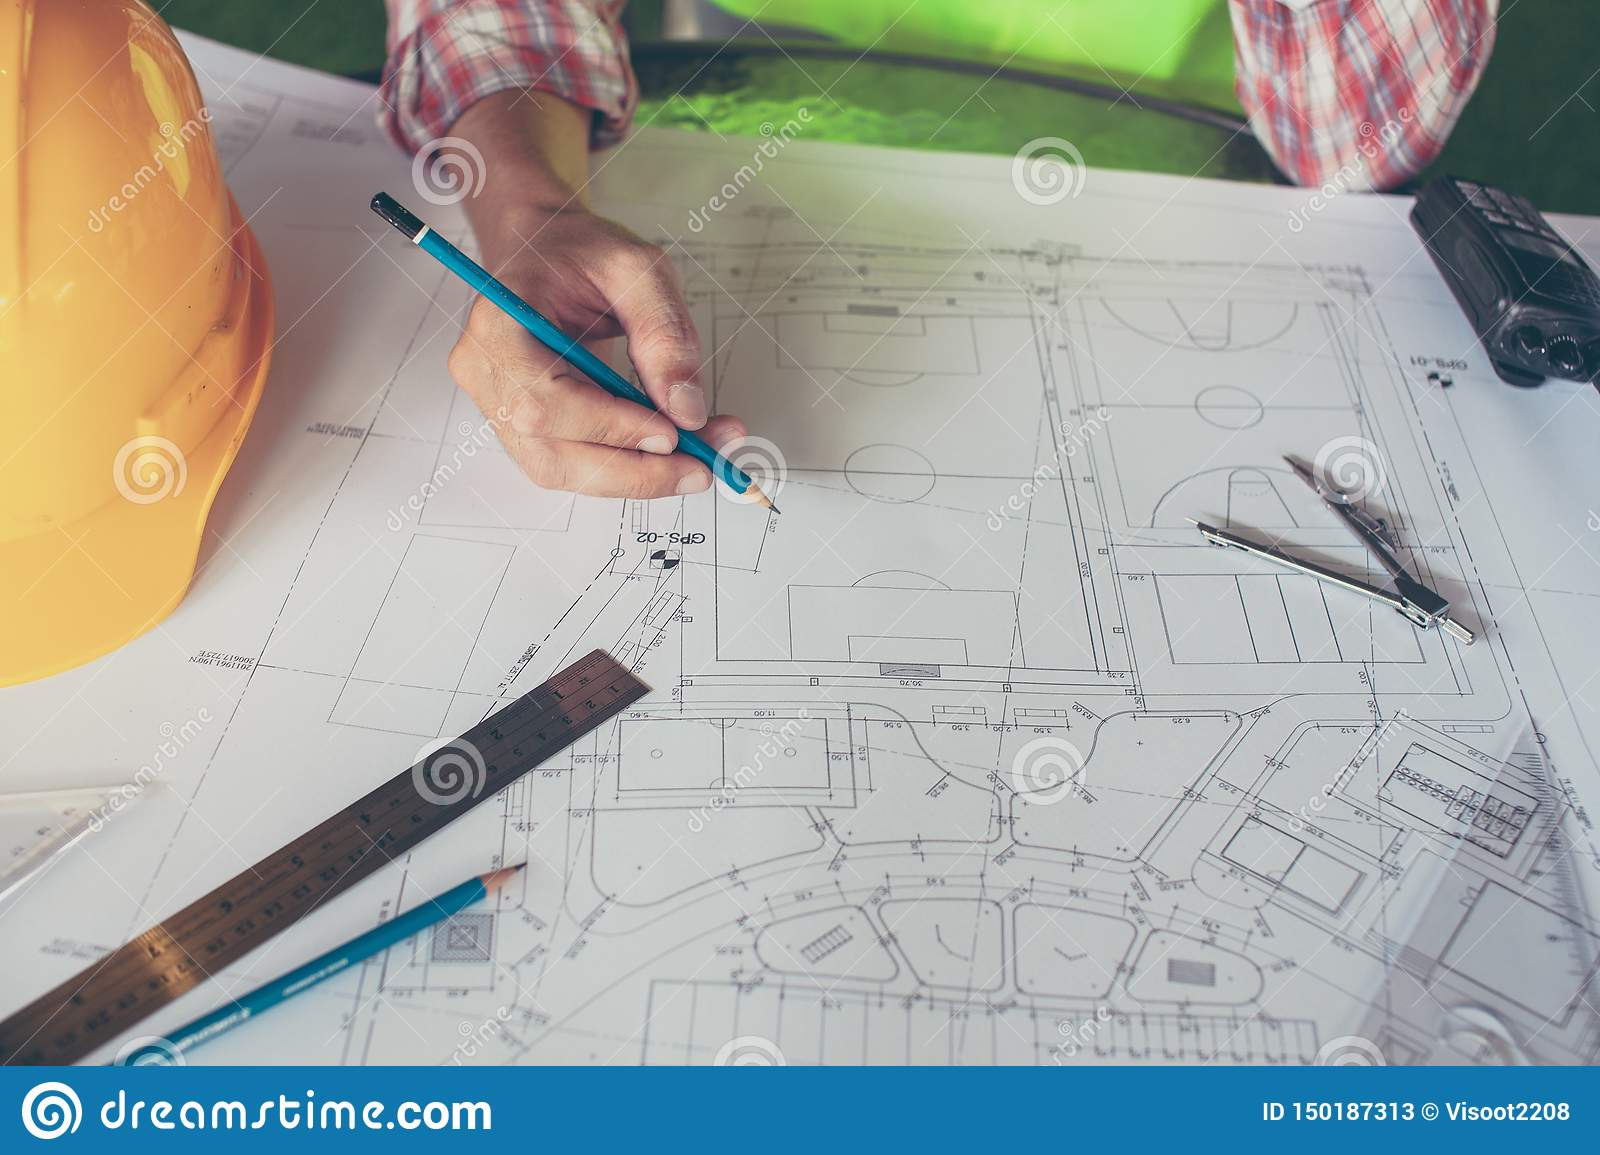 Concept architects,engineer holding pen pointing equipment architects On the desk with a blueprint in the office, Vintage, Sunset